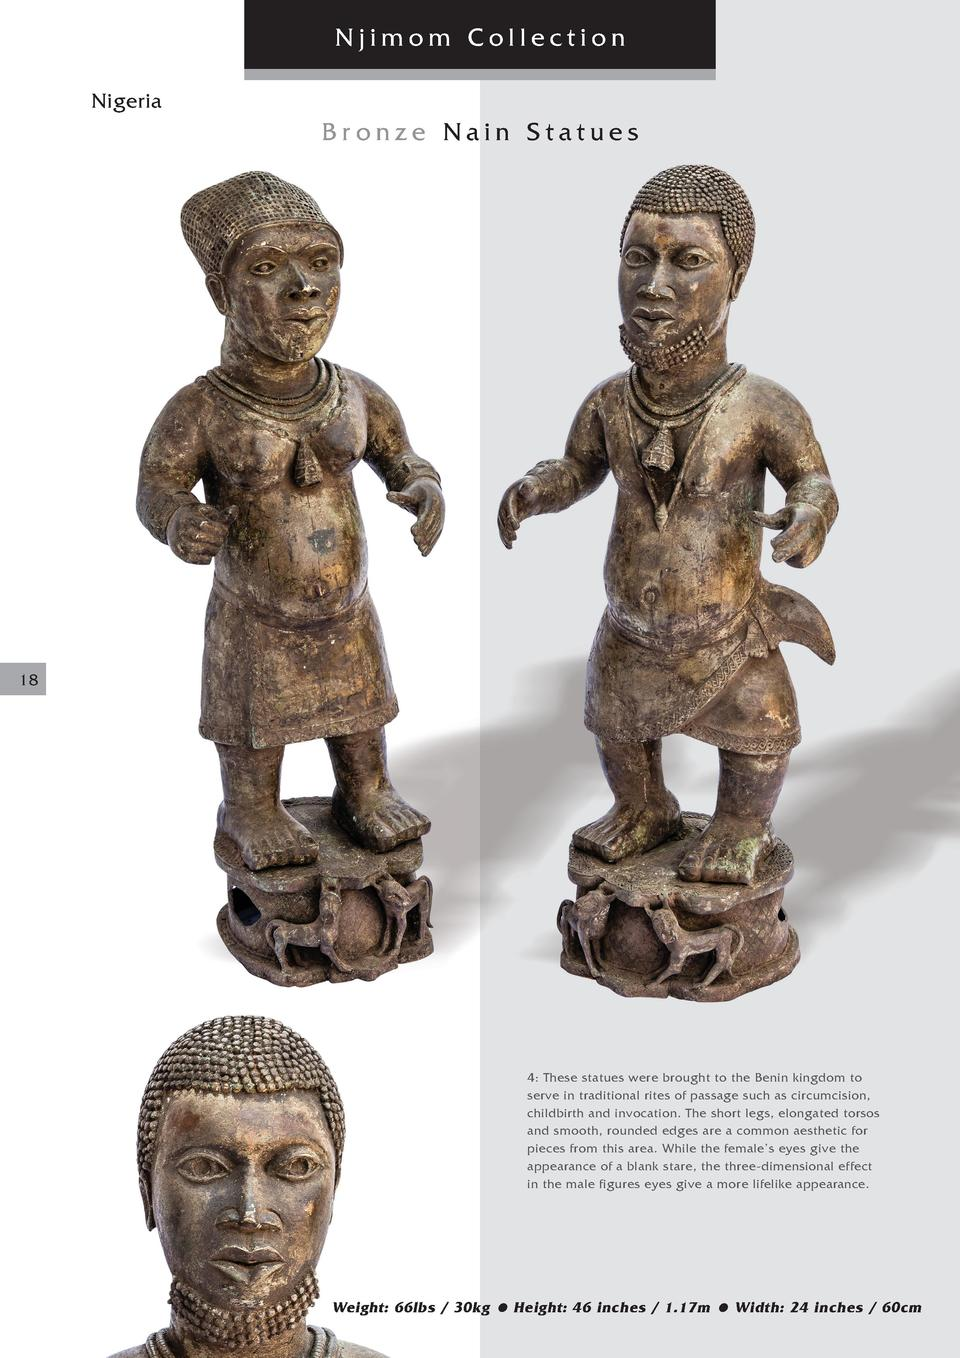 Njimom Collection Nigeria  Bronze Nain Statues  18  4  These statues were brought to the Benin kingdom to serve in traditi...